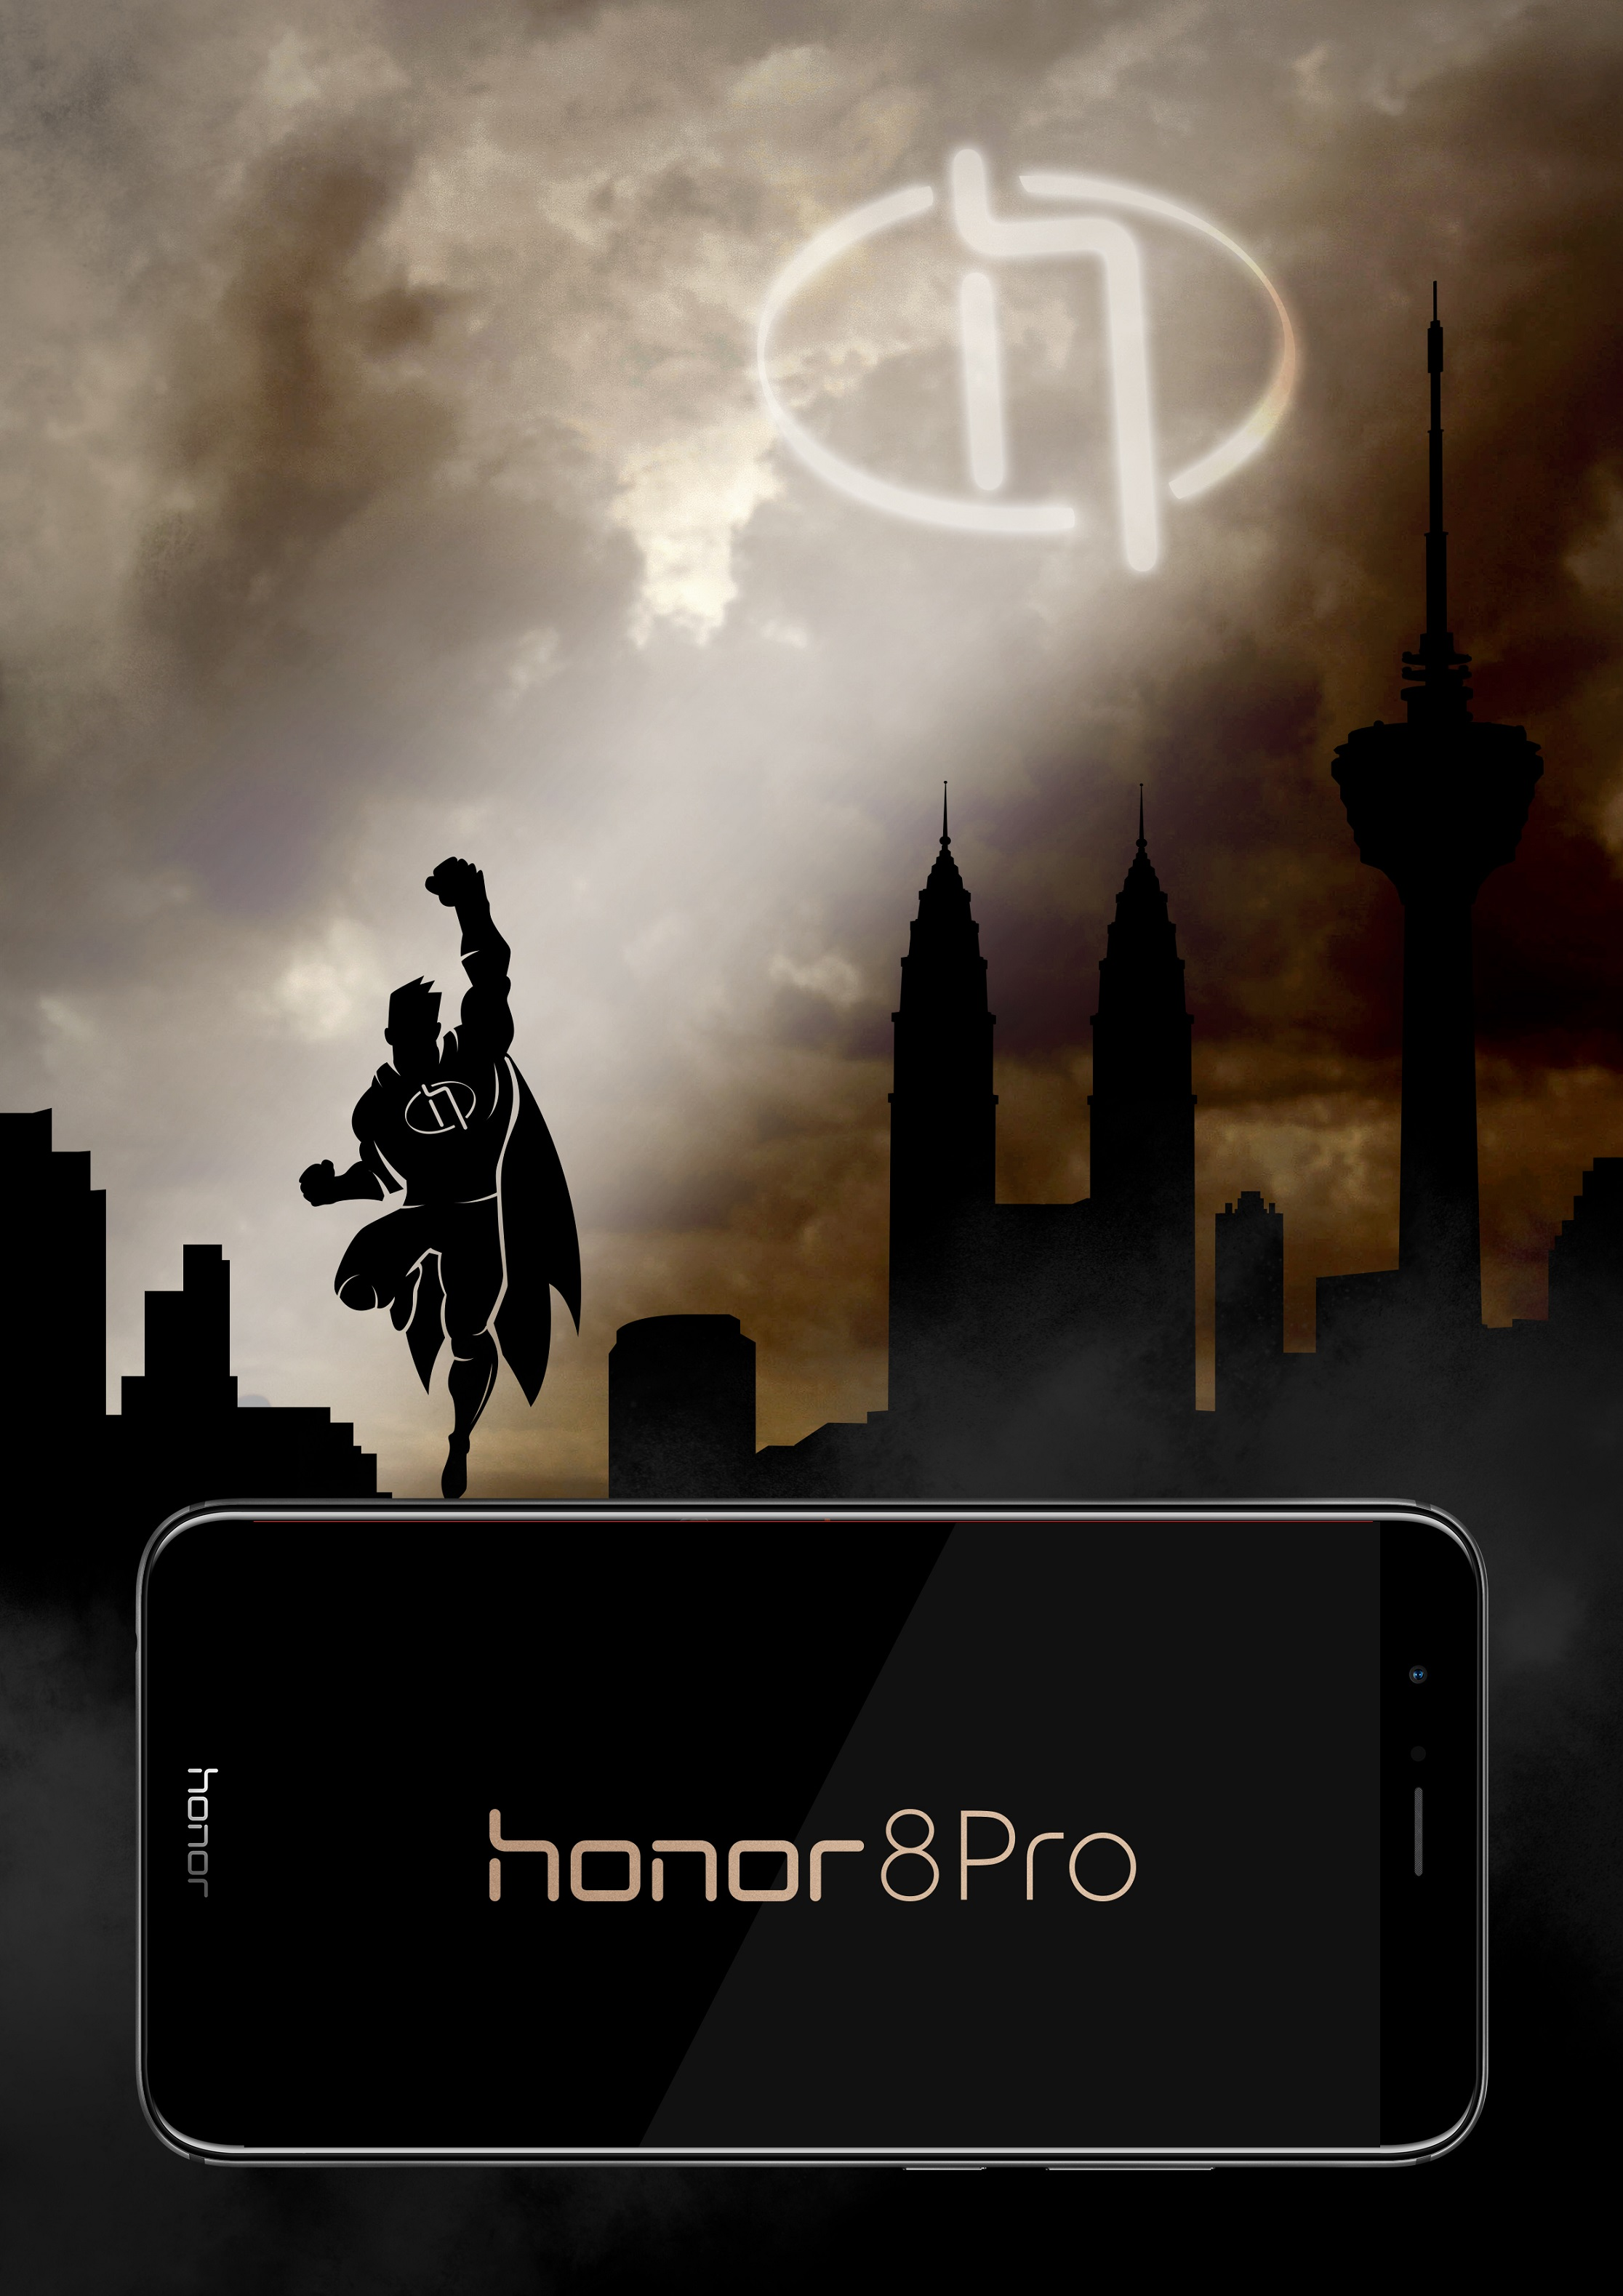 Honor has confirmed a July release date for the Honor 8 Pro - KLGadgetGuy